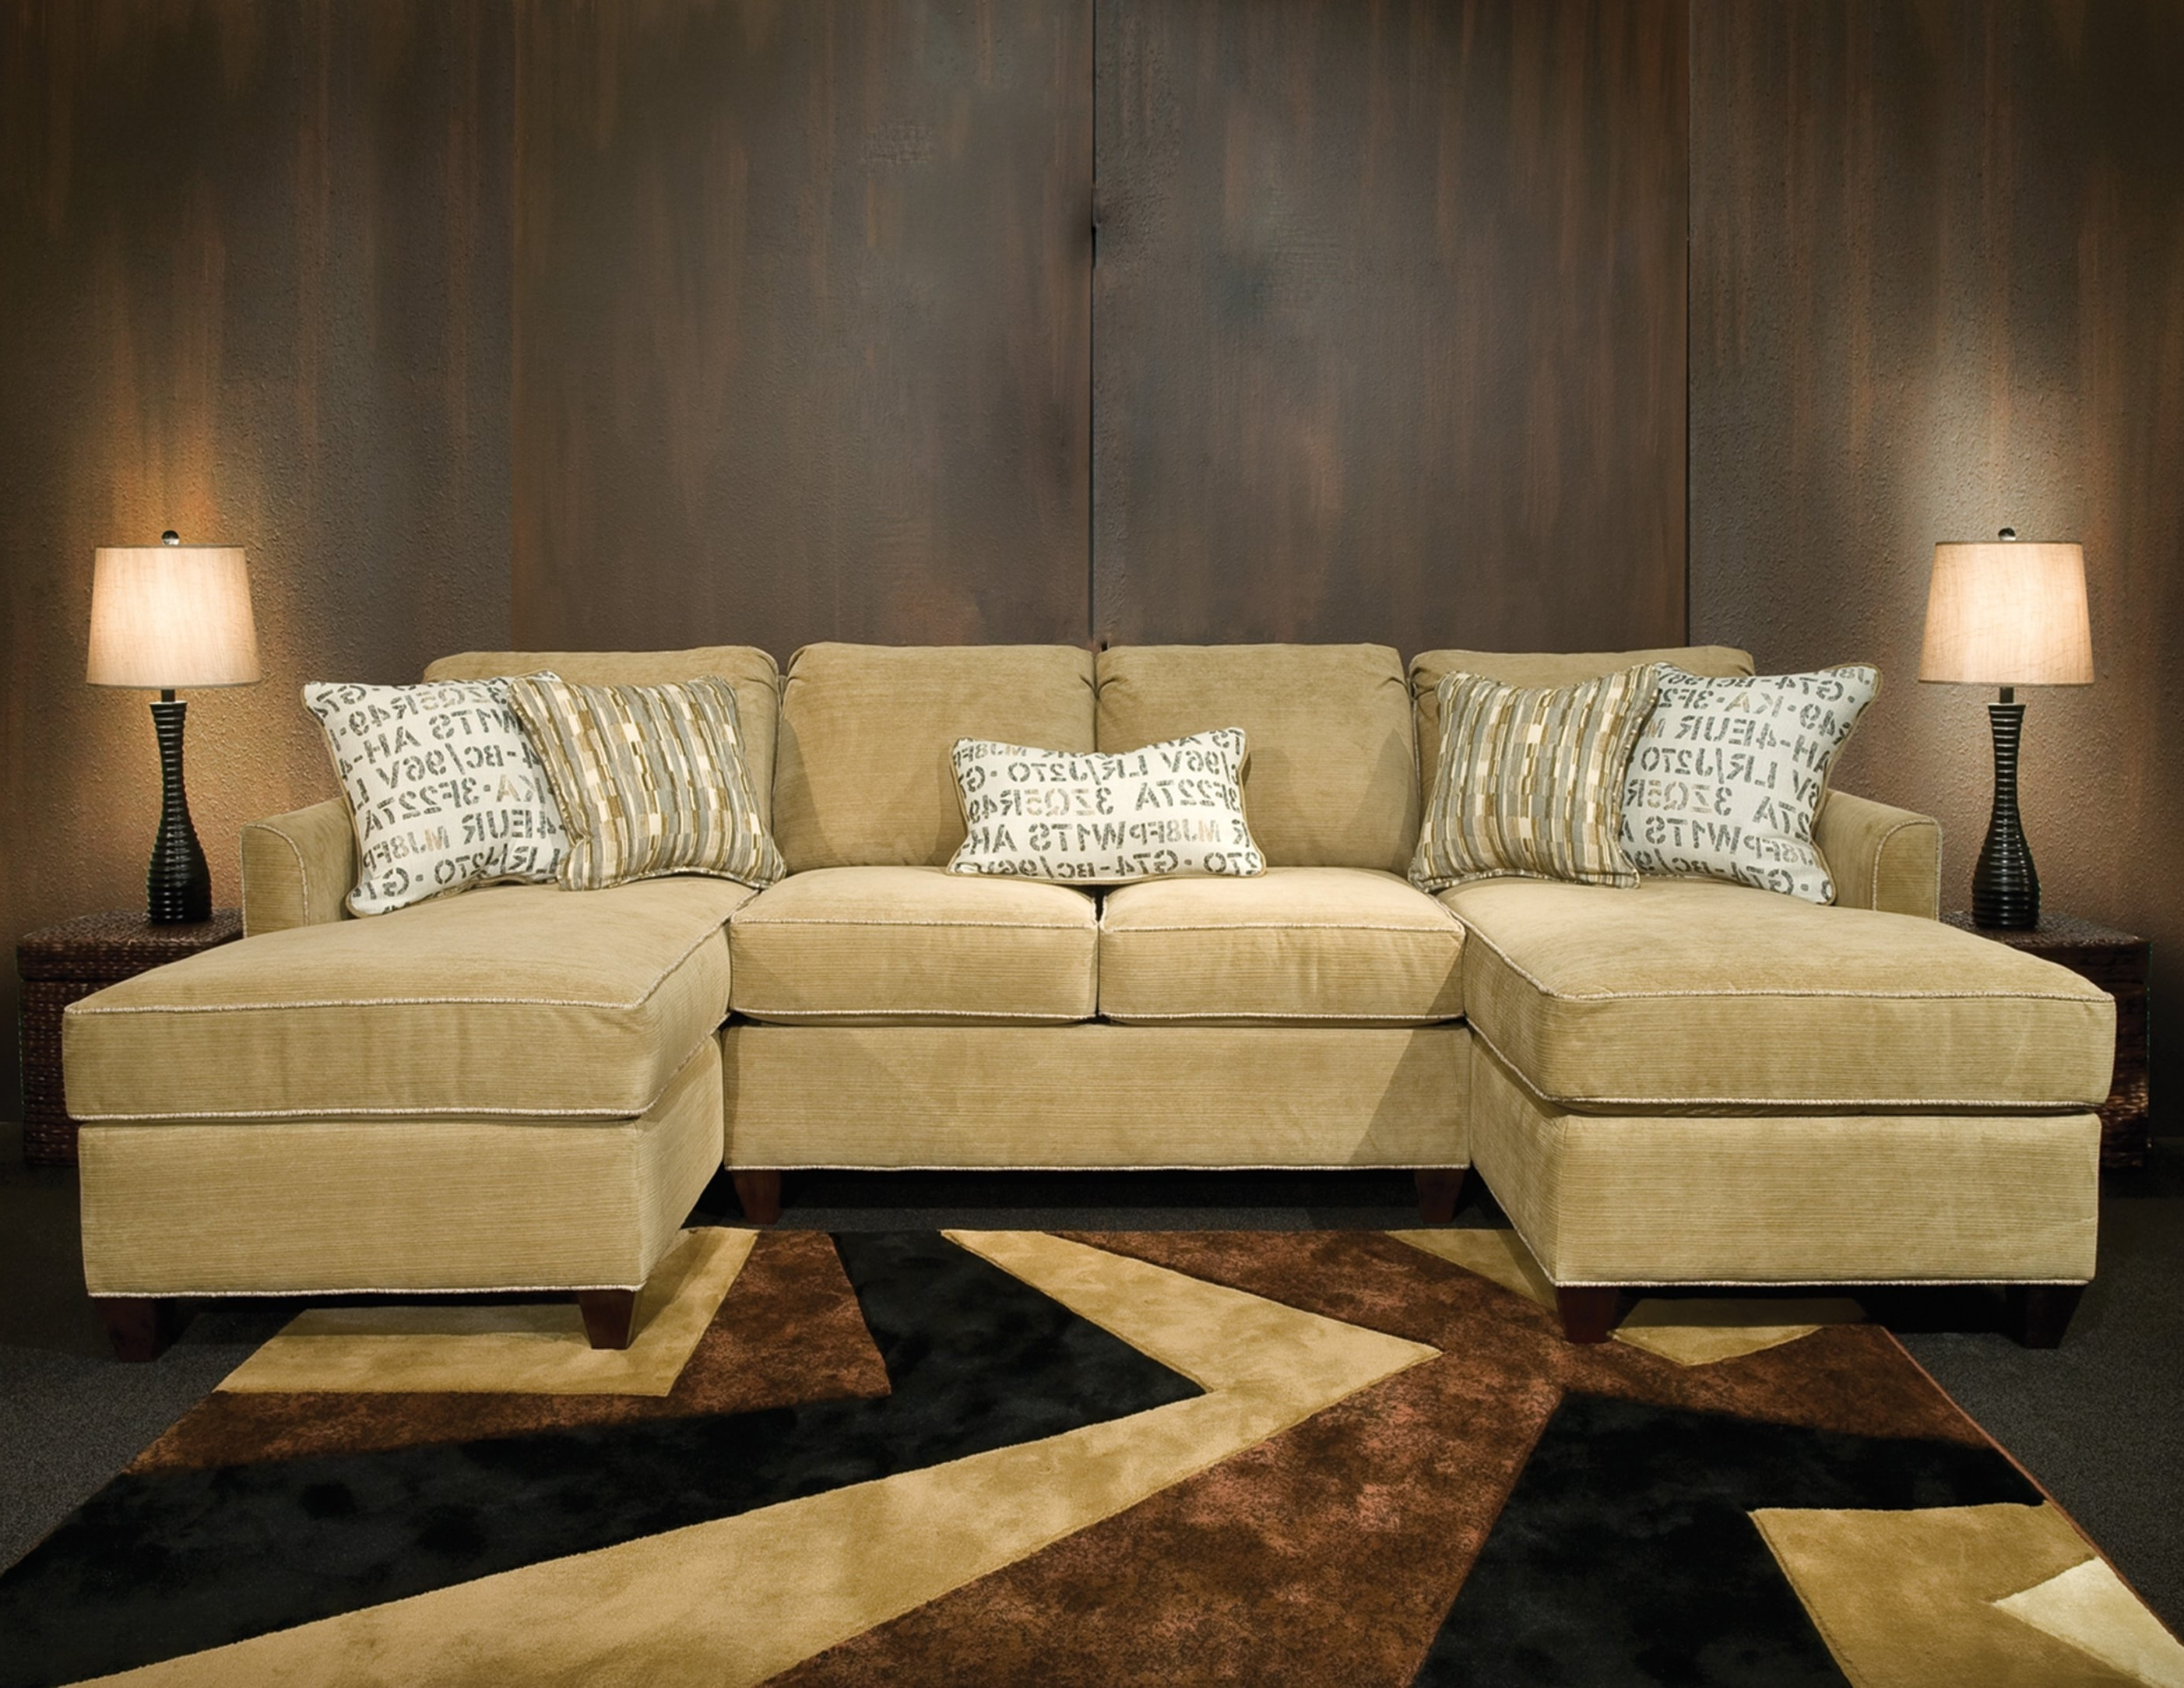 Recent Double Chaise Lounge Sofa 15 In Sofas And Couches Ideas Regarding With Regard To Double Chaise Lounge Sofas (View 12 of 15)